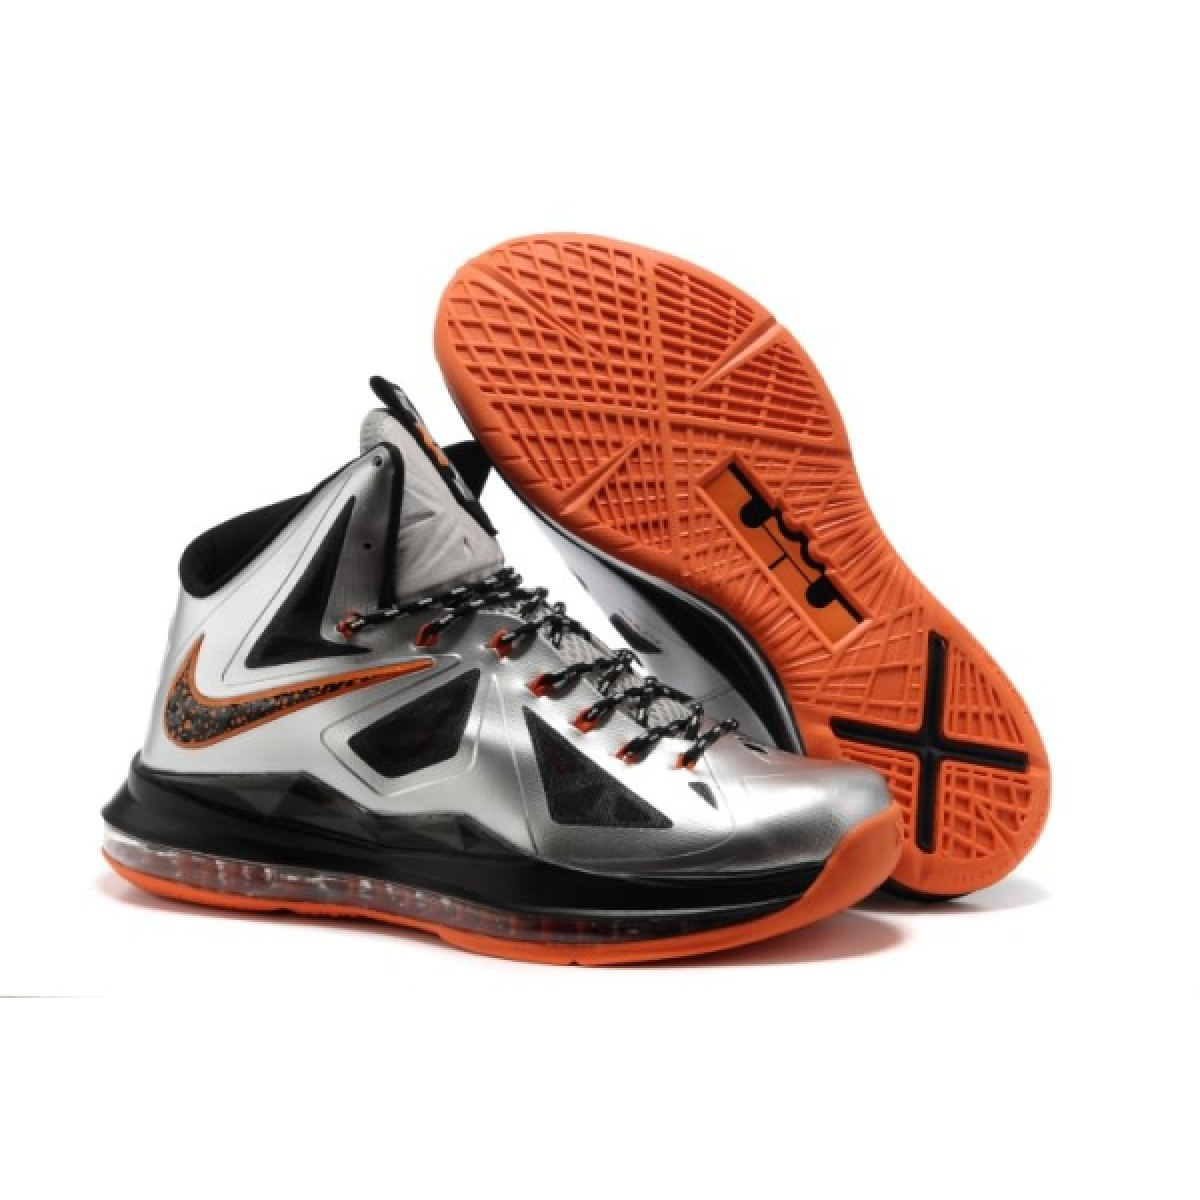 Nike Lebron 10 Silver Black Orange Shoes For Sale